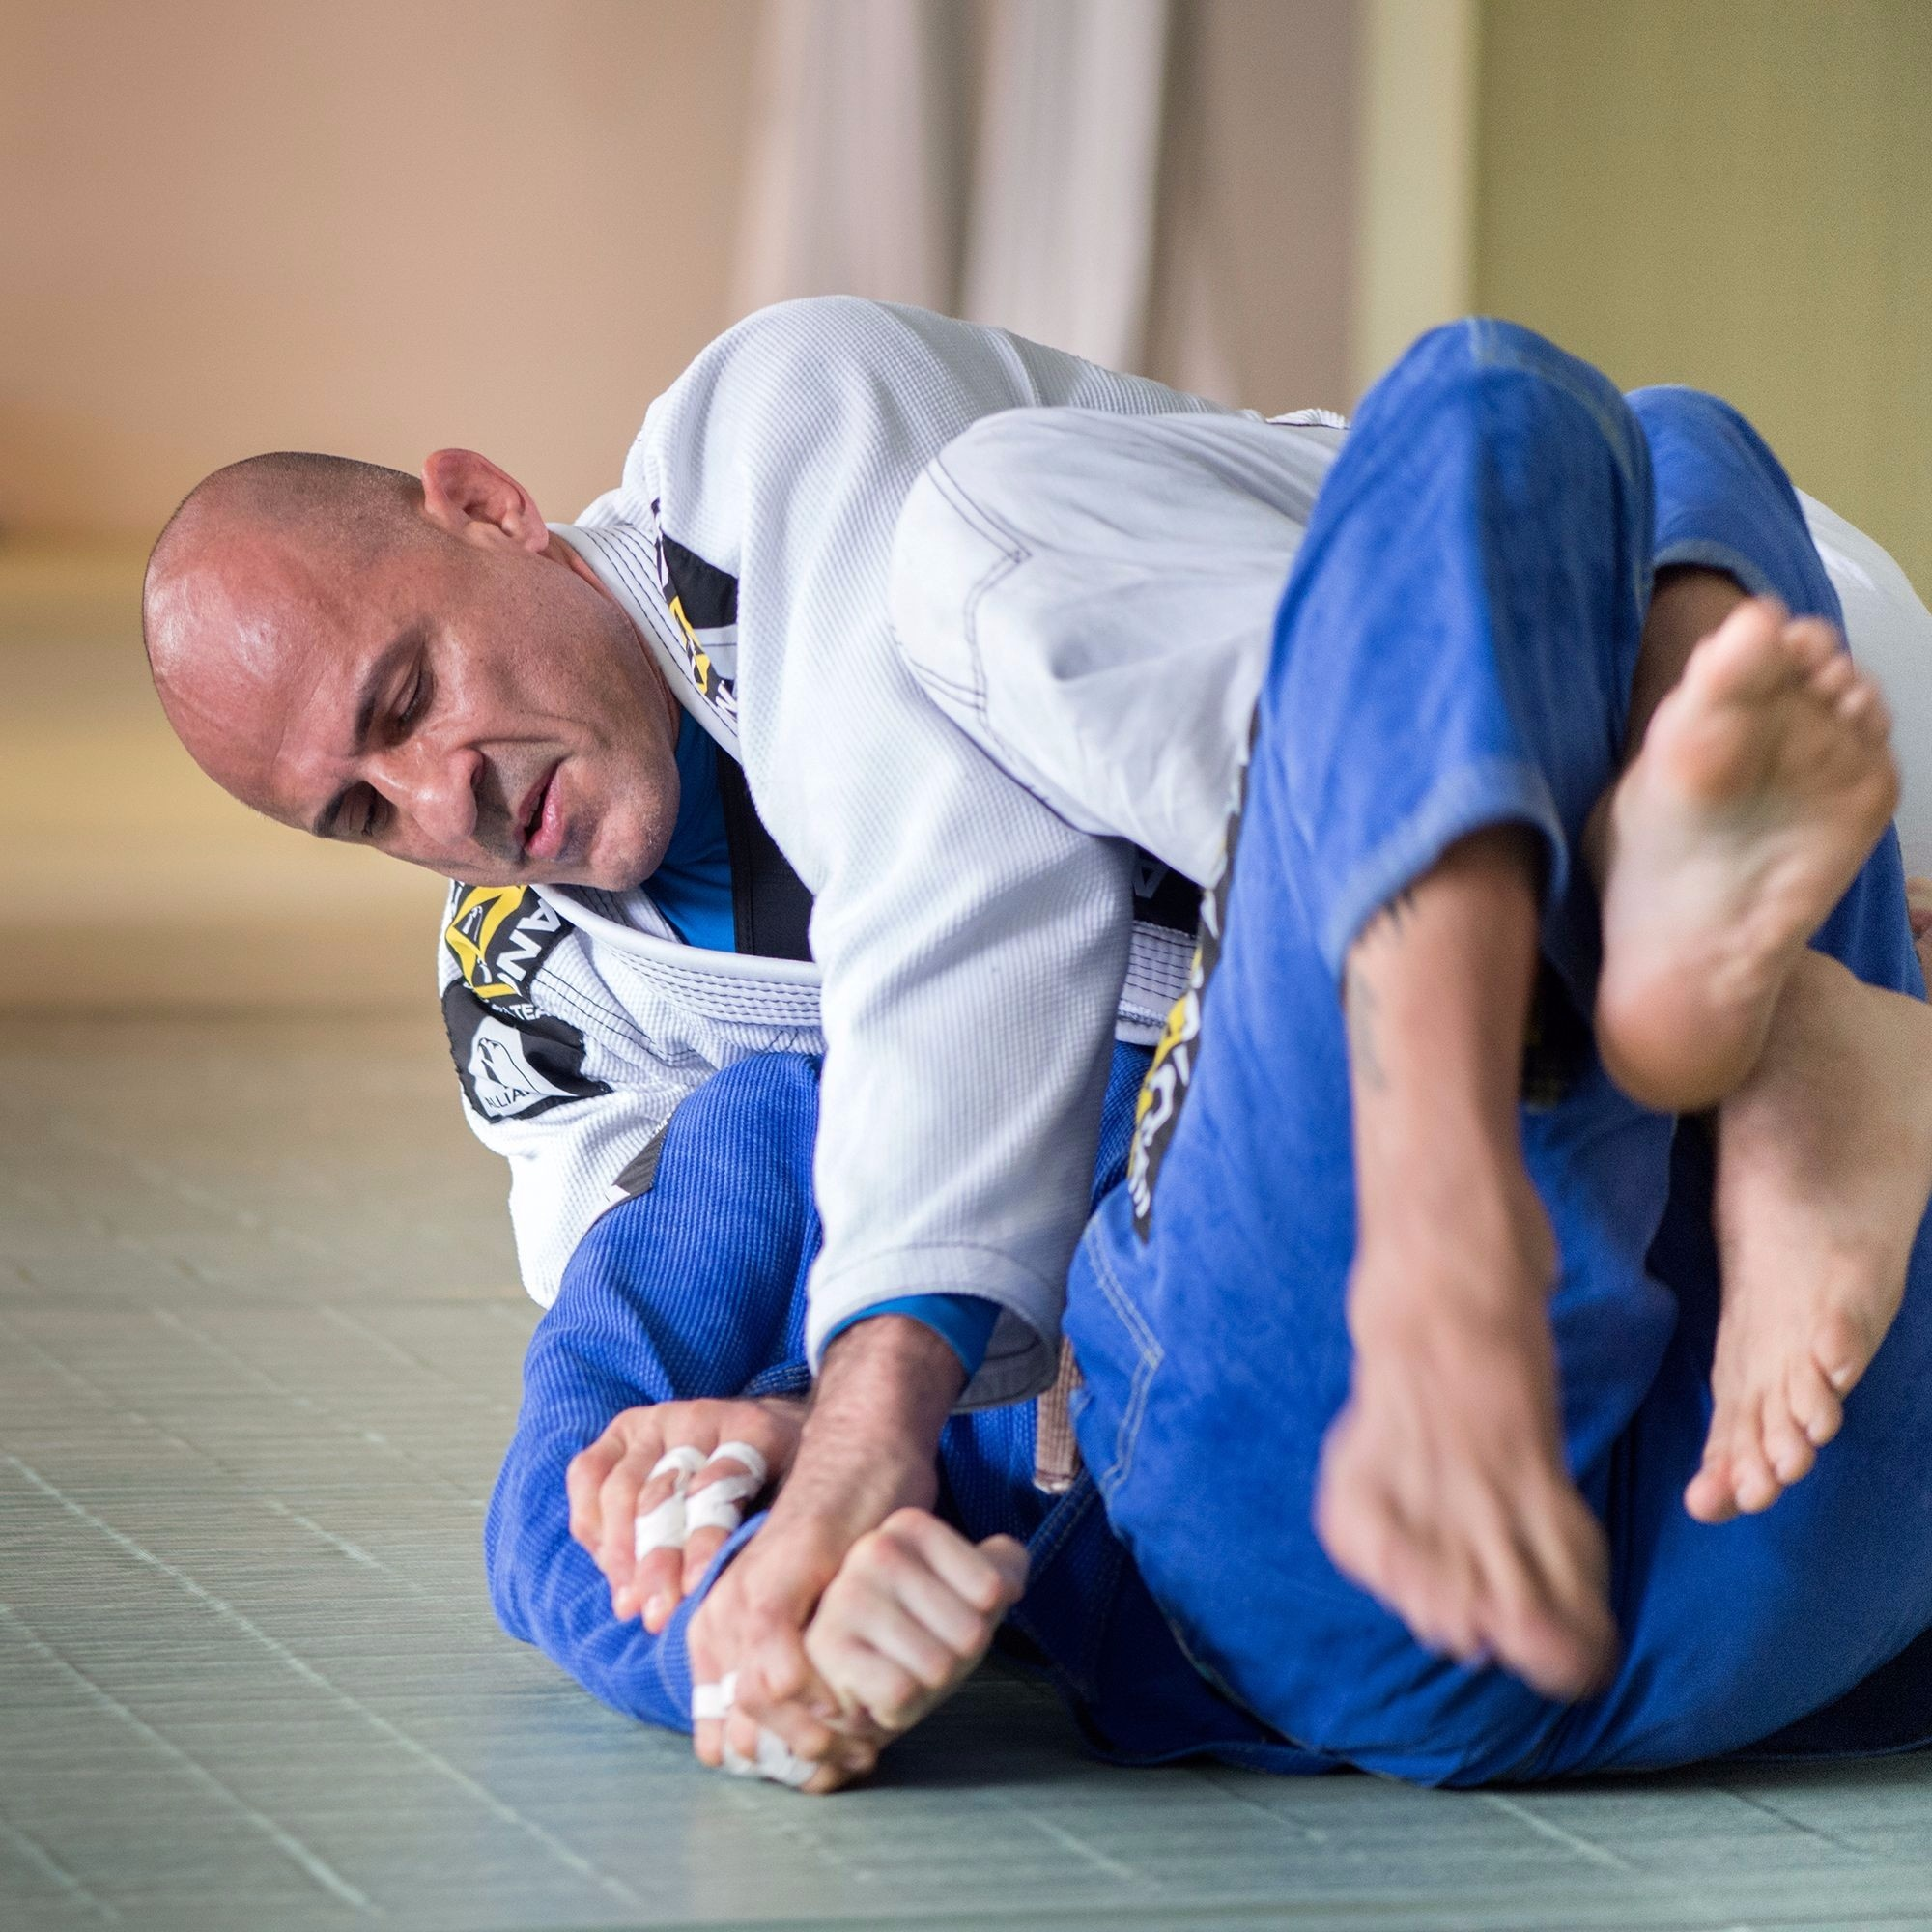 "1999 Brazilian Jiu-Jitsu World Champion Alexandre Paiva is a co-founder of BJJ powerhouse Alliance and the chief instructor of Alliance Leblon, RJ. He graduated several world champions such as Fernando Tererê and Leo Leite. Get to know more about ""Gigi"" <a href=""http://www.bjjheroes.com/bjj-fighters/alexandre-paiva"">here</a>."